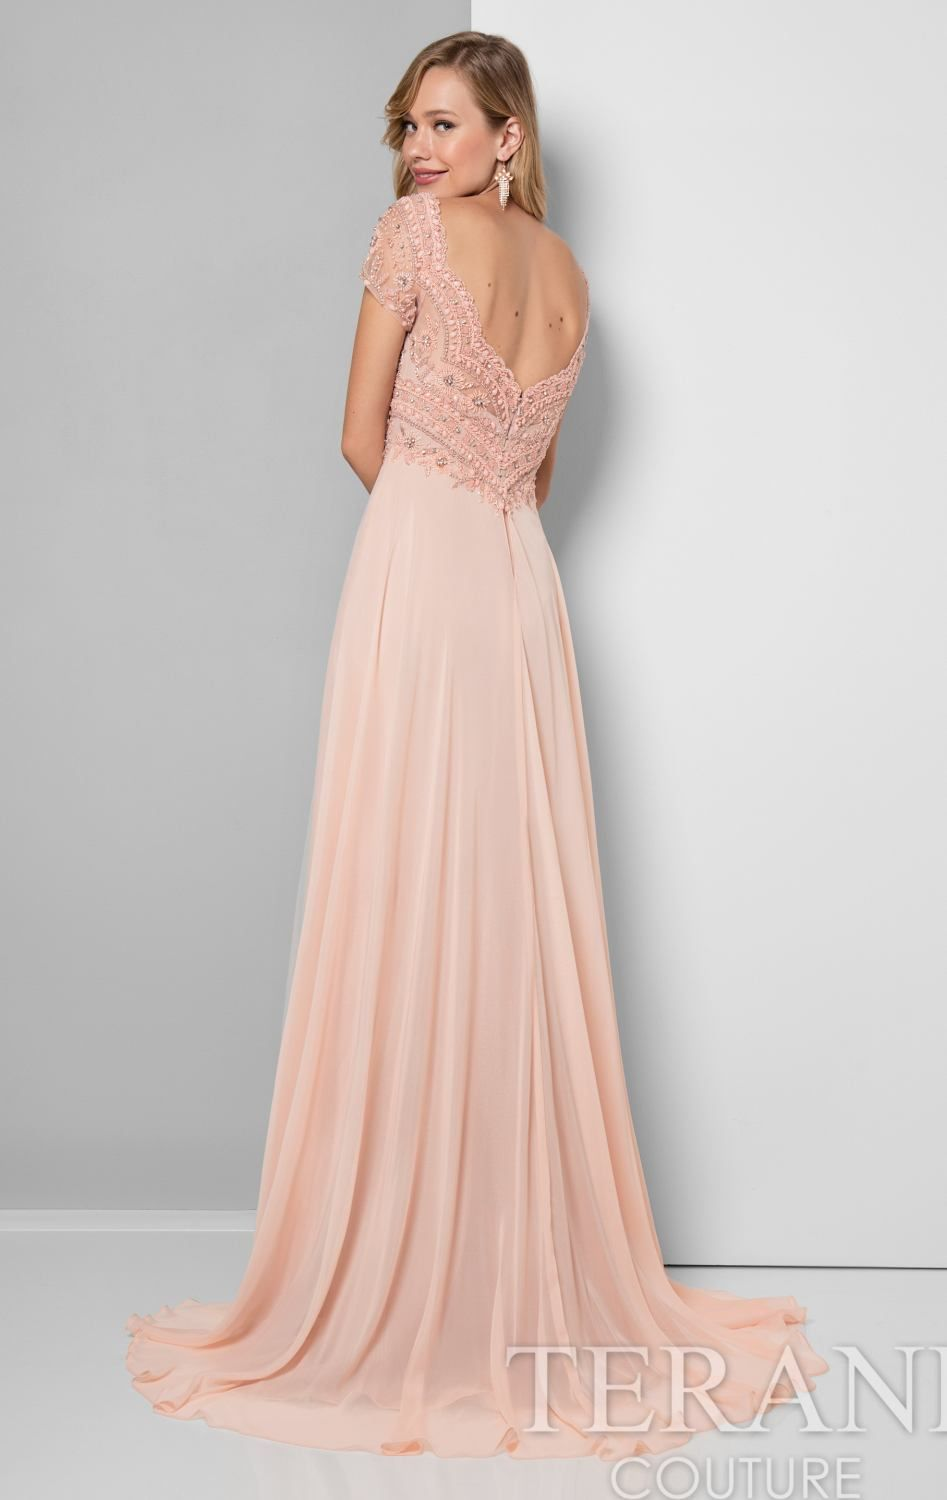 www.missesdressy.com images items 1711m3377-by-terani-couture ...